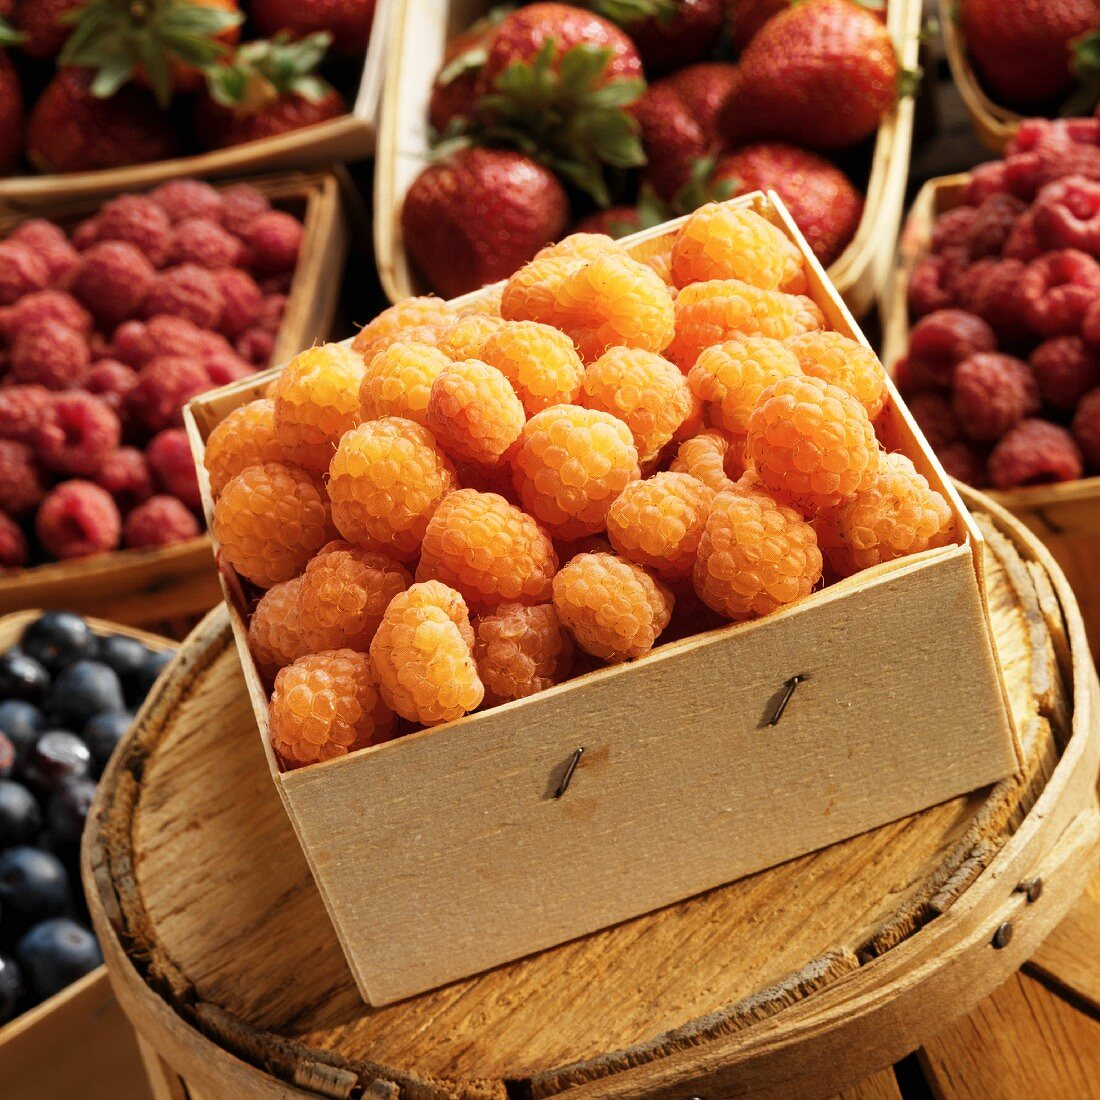 Yellow raspberries in a wooden box